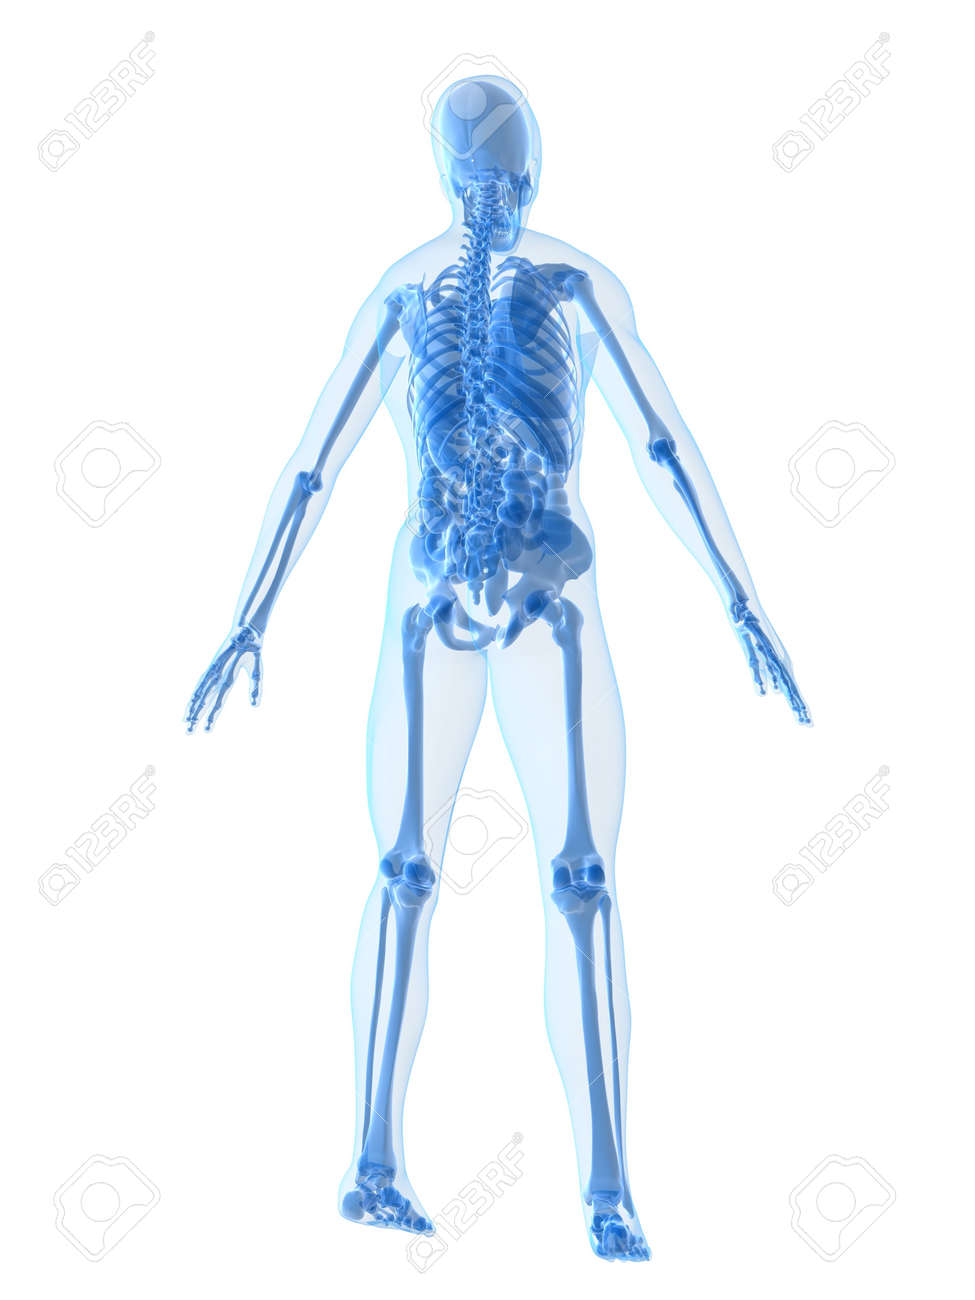 human anatomy Stock Photo - 2020924